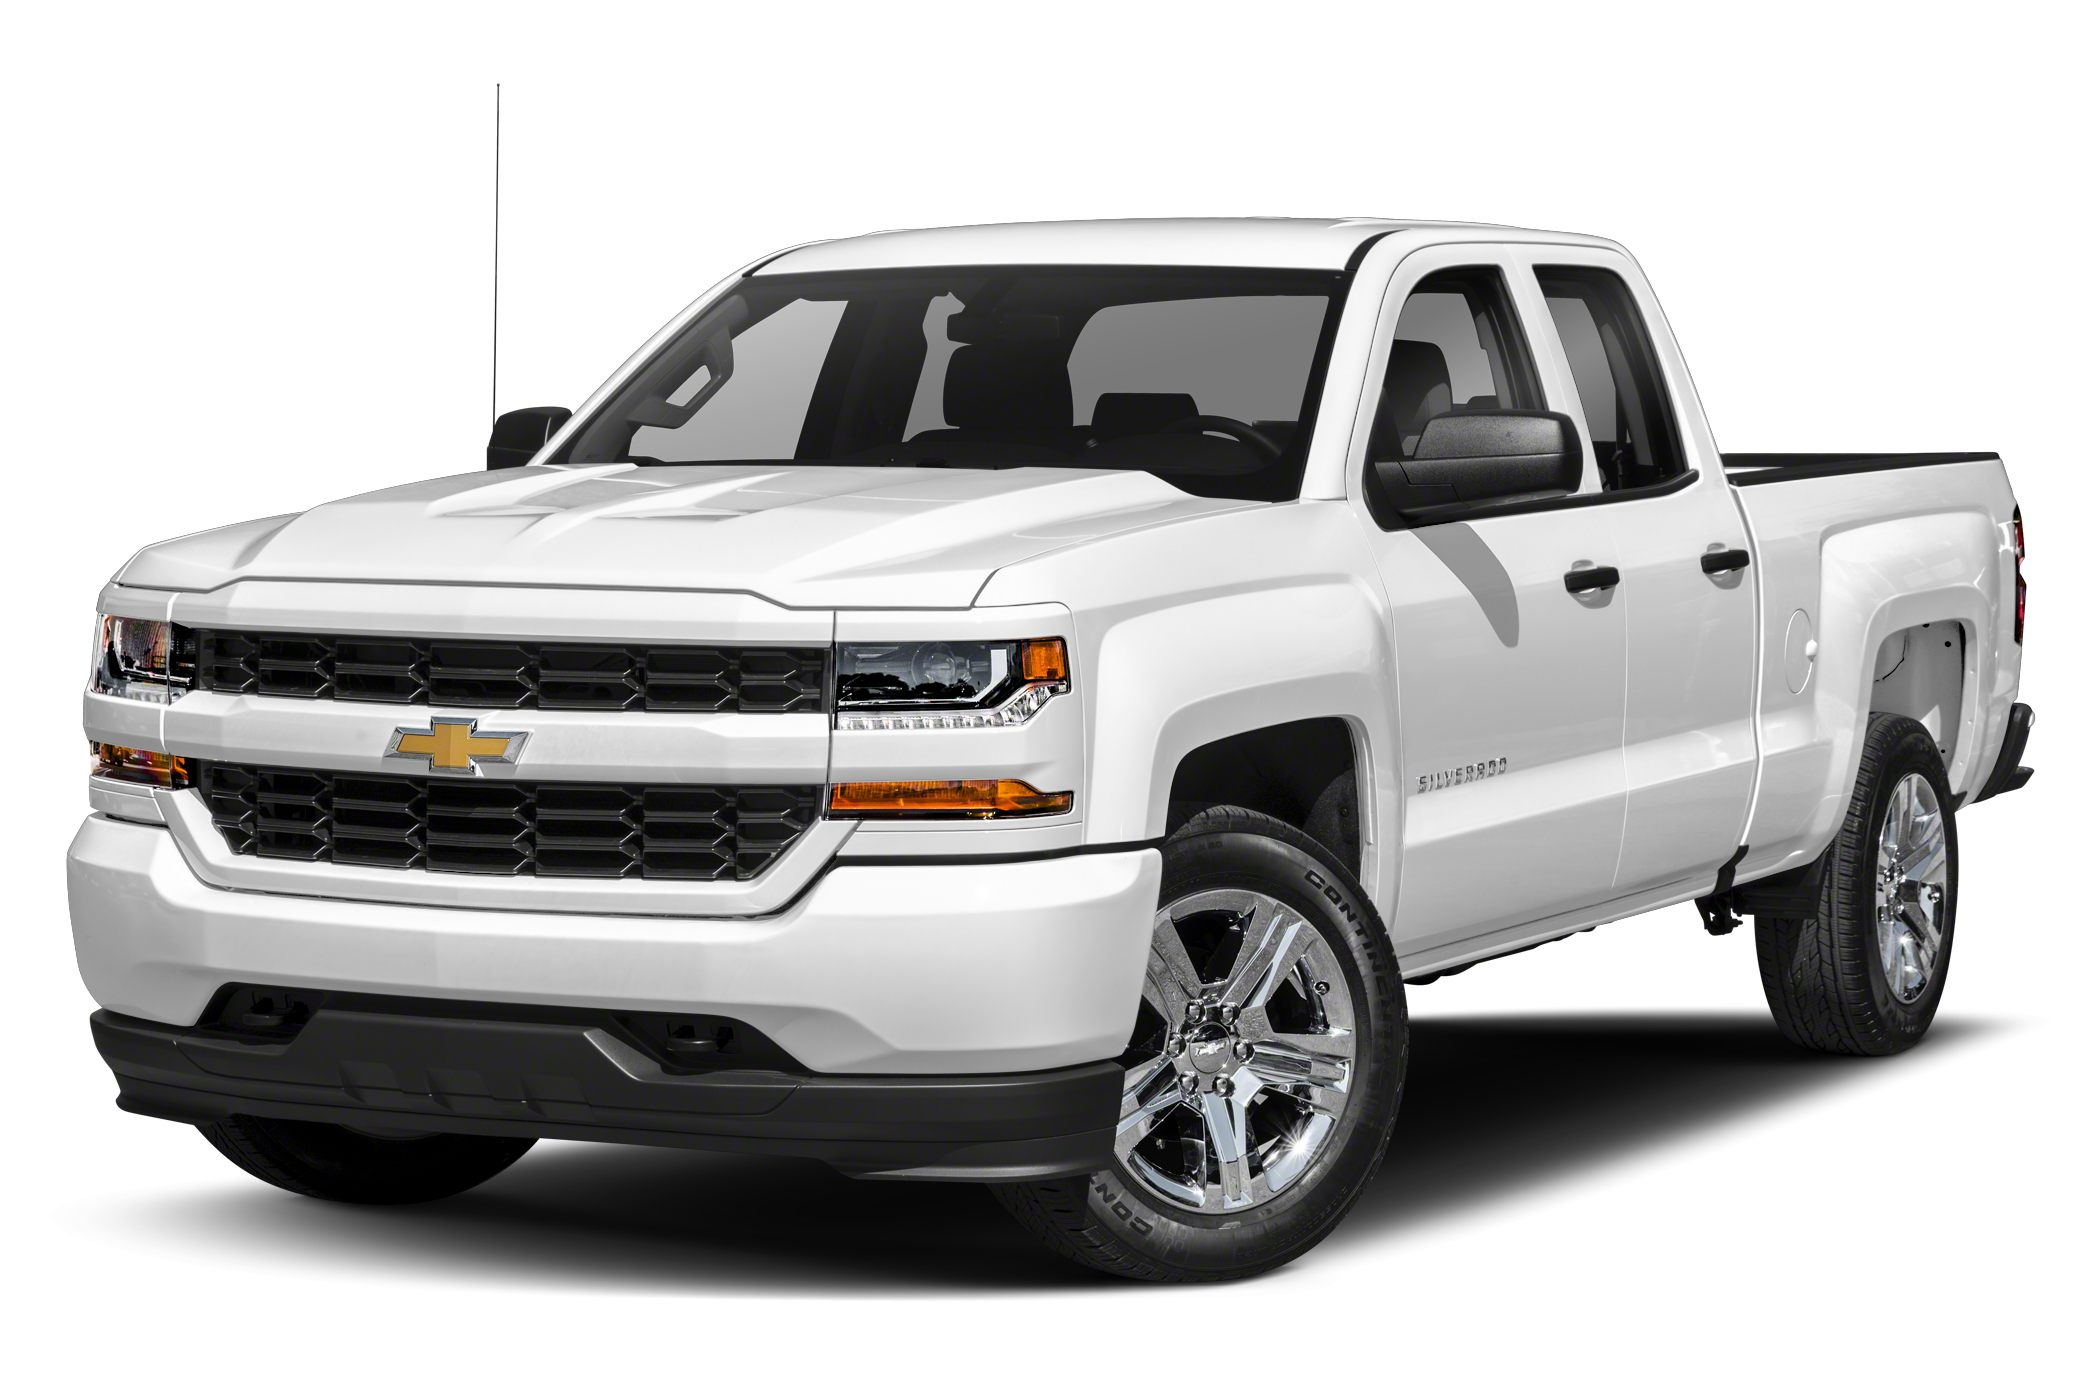 2018 Chevrolet Silverado 1500 Silverado Custom 4x2 Double Cab 6.6 ft. box 143.5 in. WB